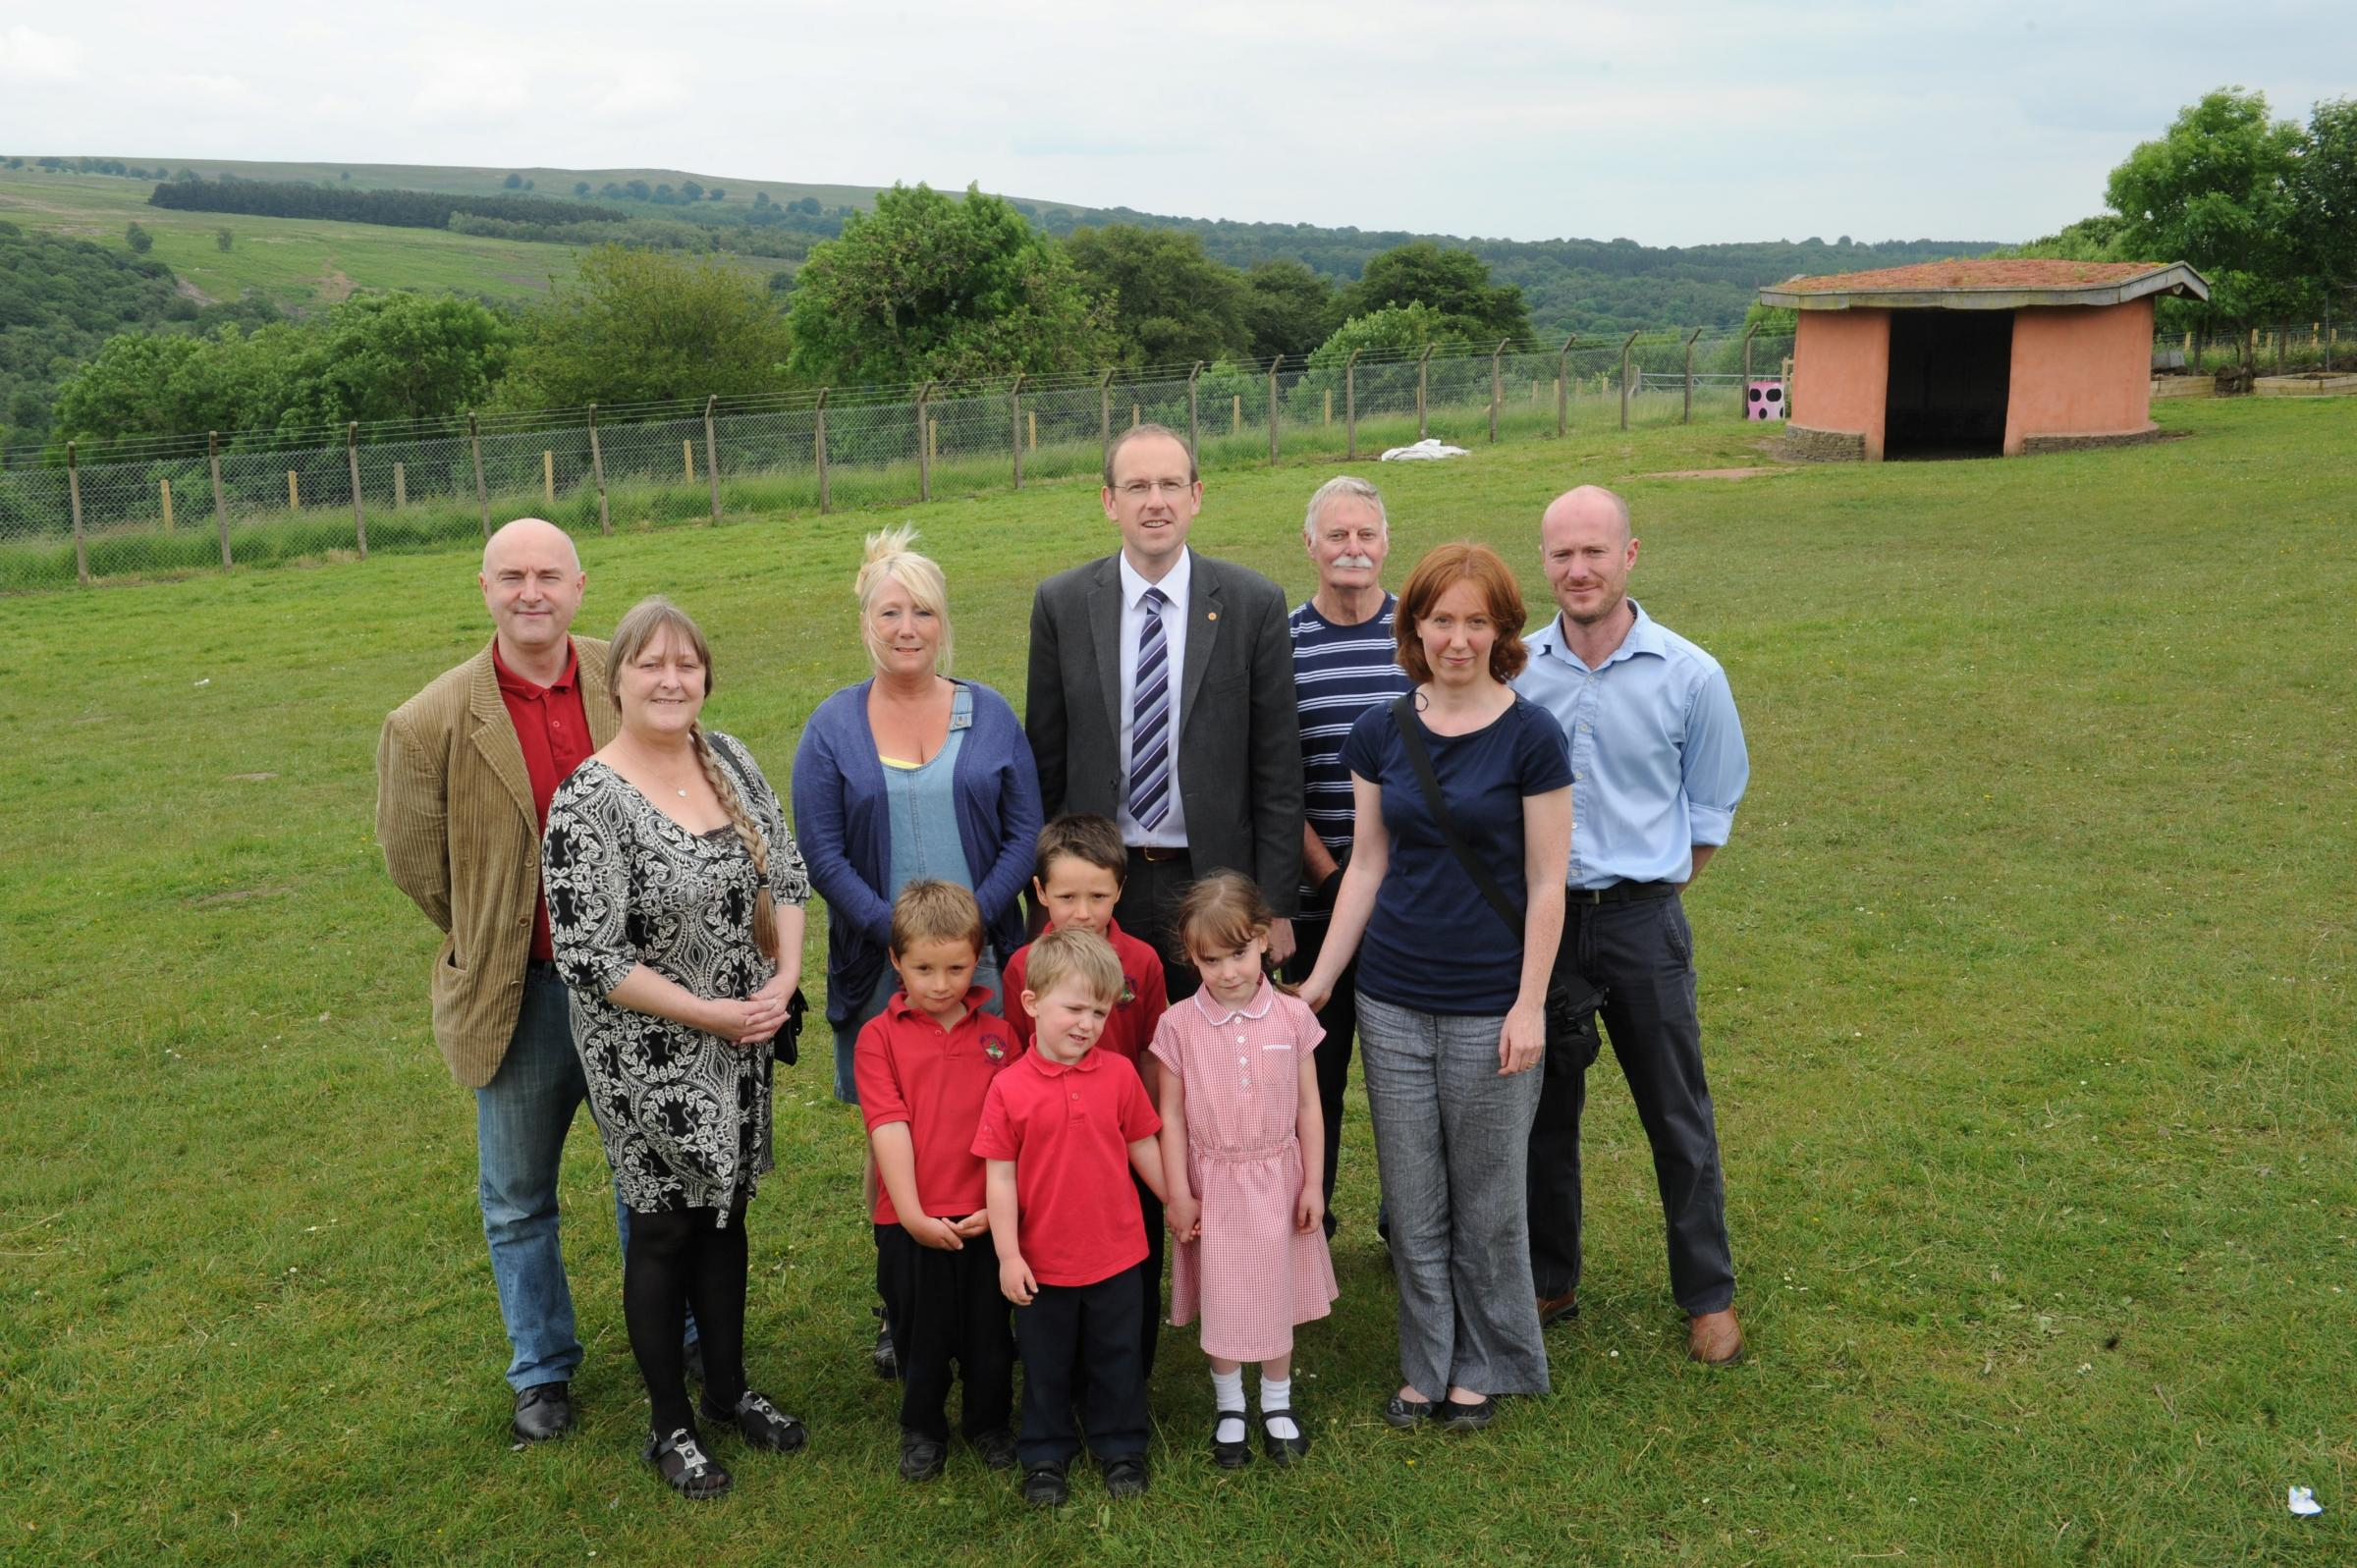 Llyr Gruffydd AM meets with residents of Varteg opposed to the proposed opencast mining (7212719)